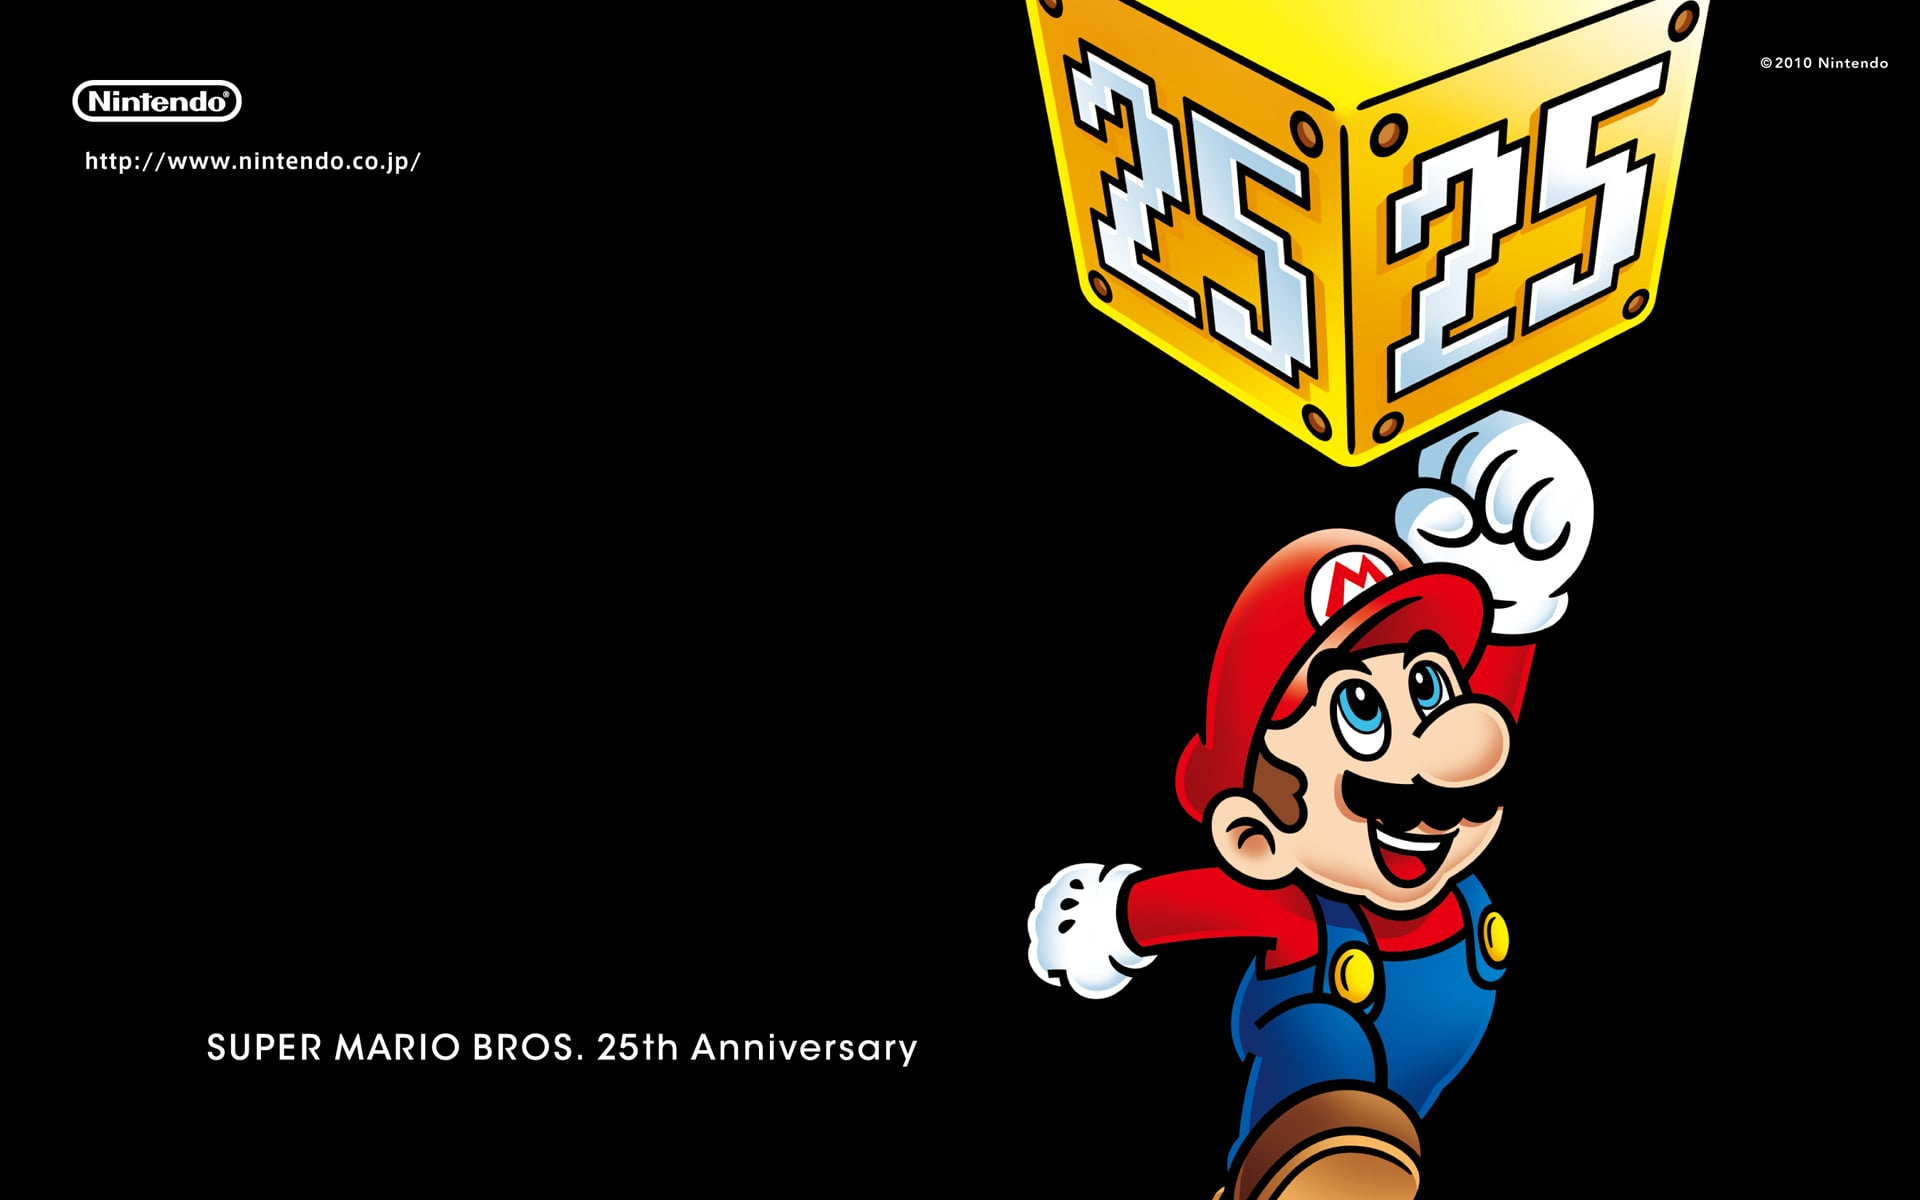 Super Mario Bros Wallpapers From Japan 2010 10 08 13 15 05 Popsugar Tech